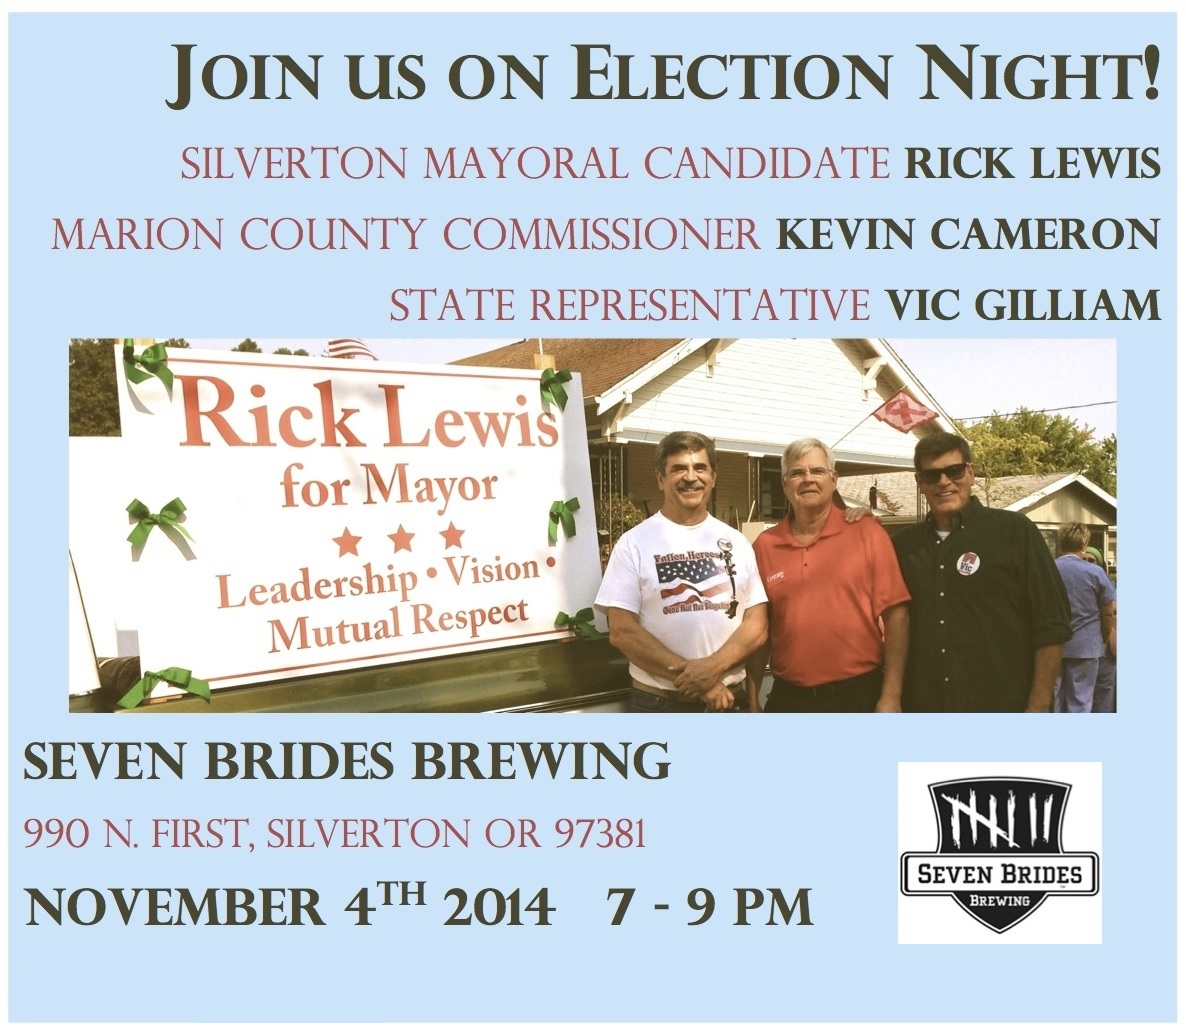 11 04 14 Election Night In Silverton 4 Newsletter